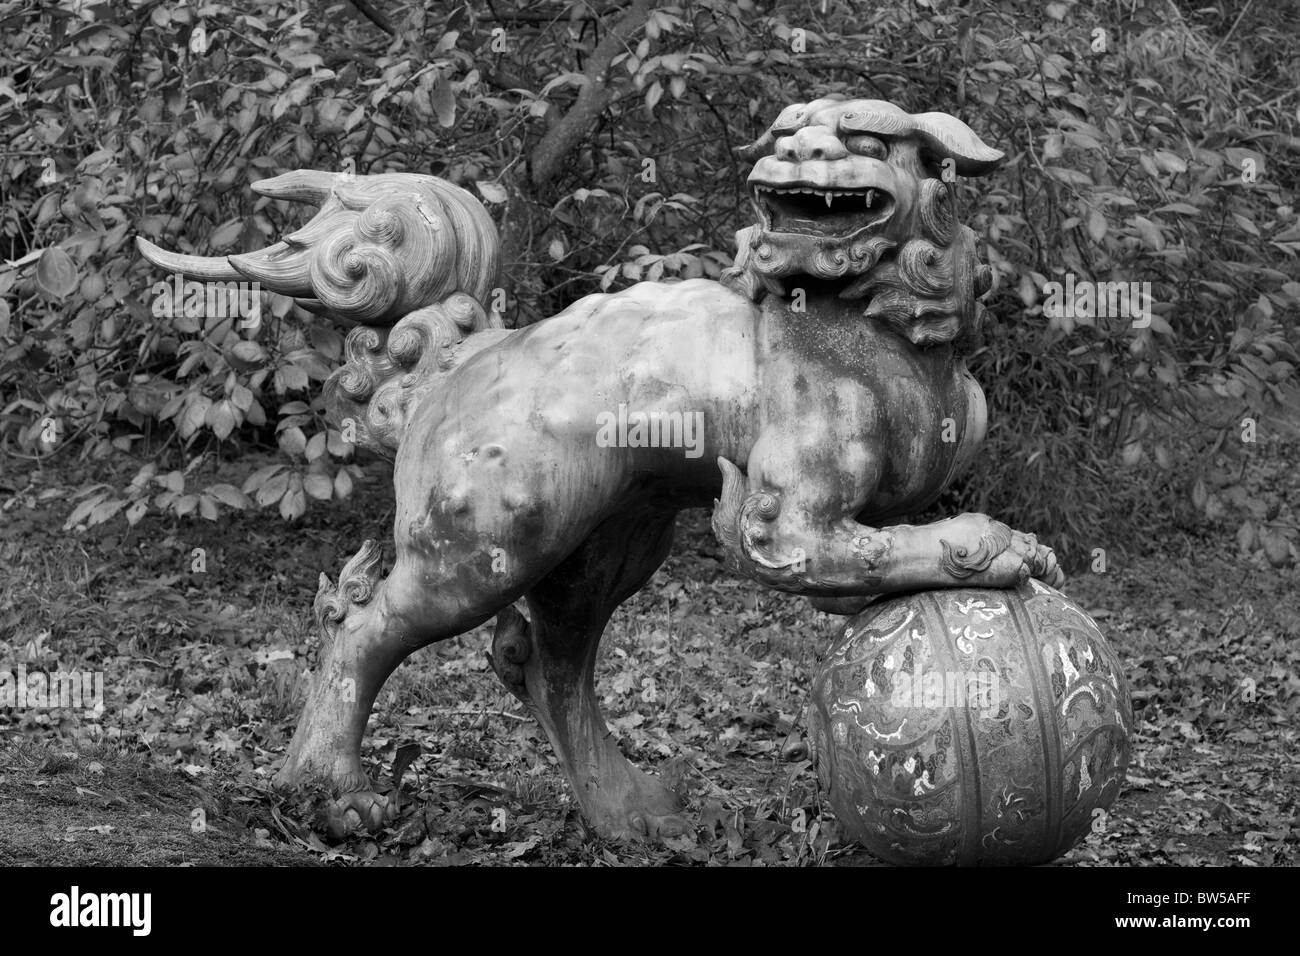 Foo Dog Sculpture on ball Black and White - Stock Image